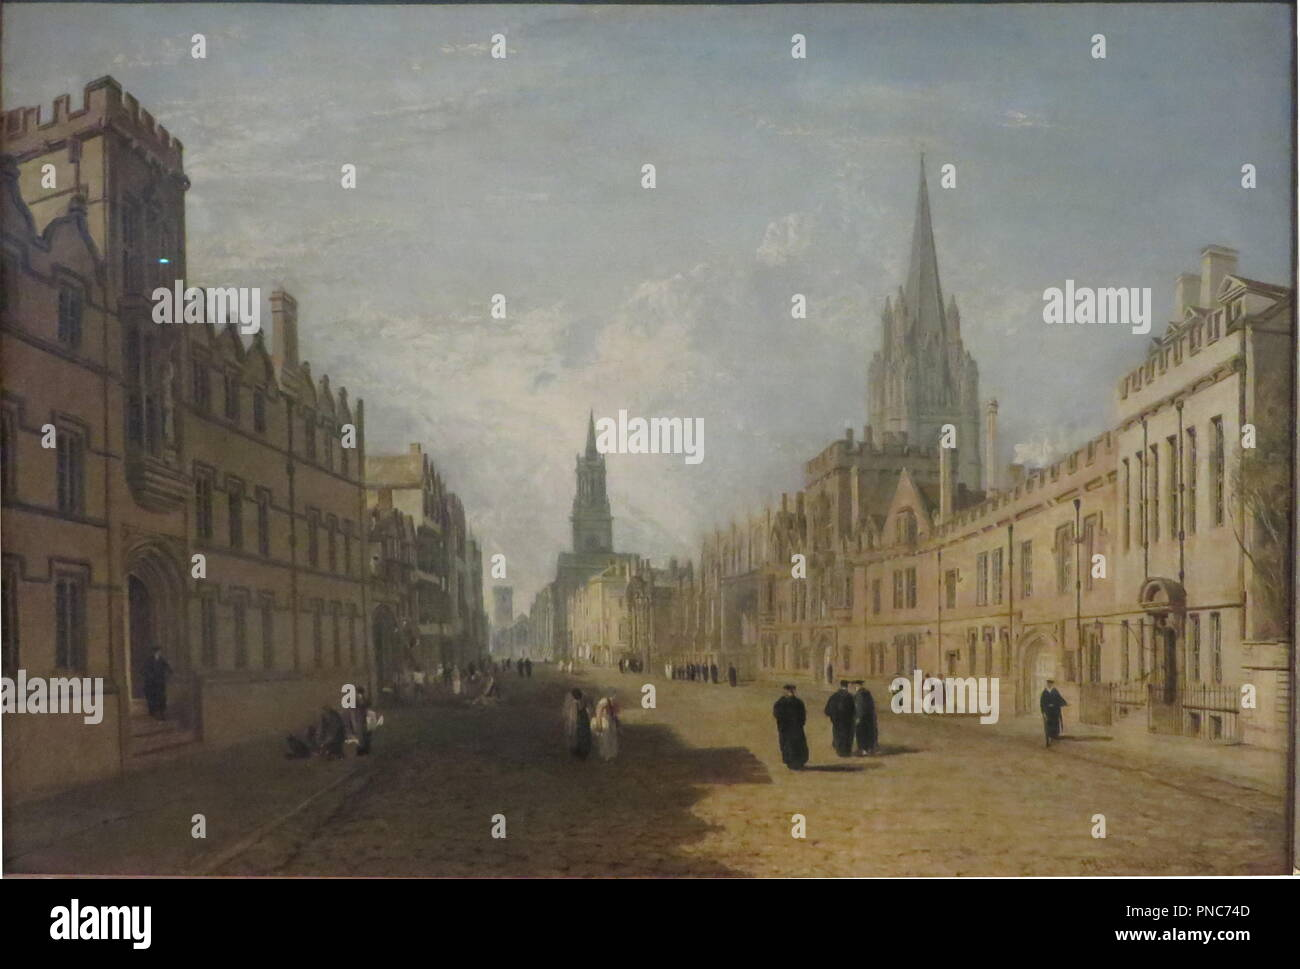 High Street, Oxford. Painting. Canvas and oil. Height: 68.5 cm (26.9 in); Width: 100.3 cm (39.4 in). Author: J. M. W. Turner. - Stock Image